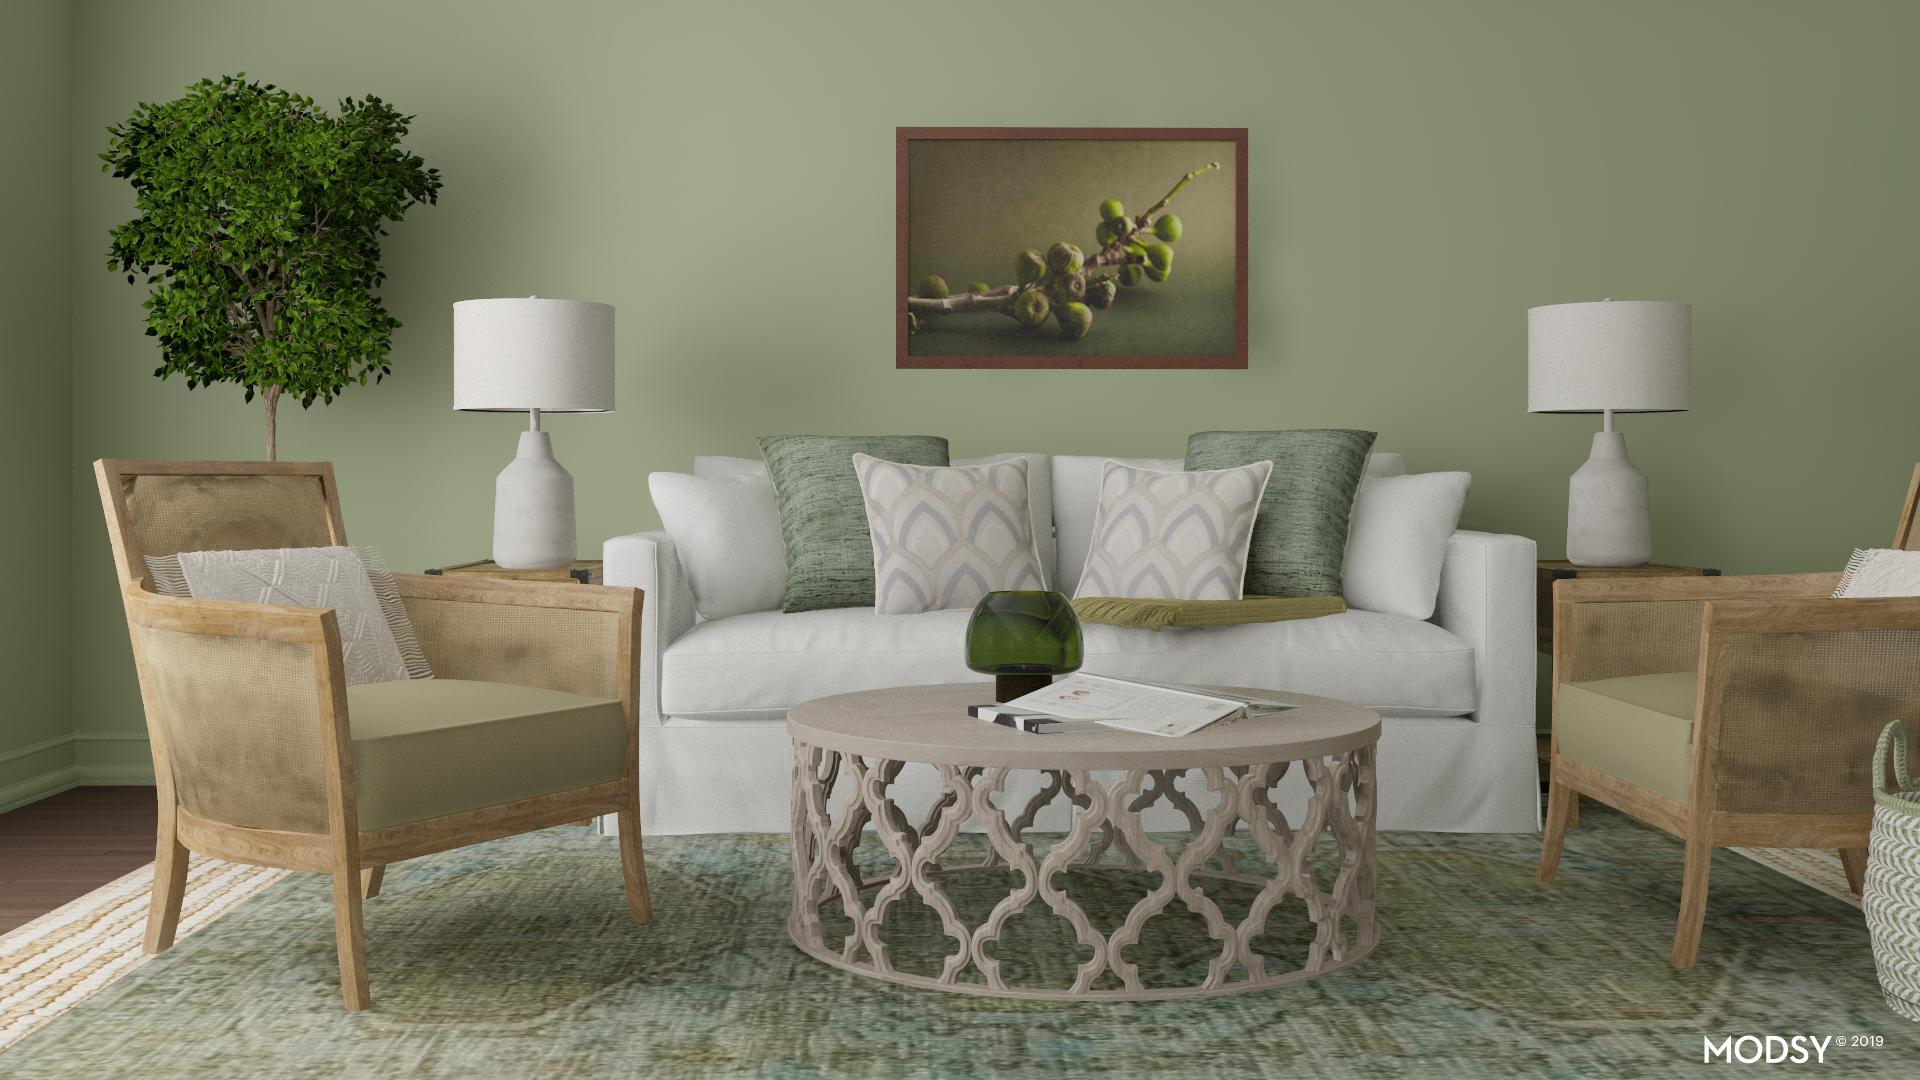 A Monochrome Green Living Room Traditional Classic Style Living Room Design Ideas